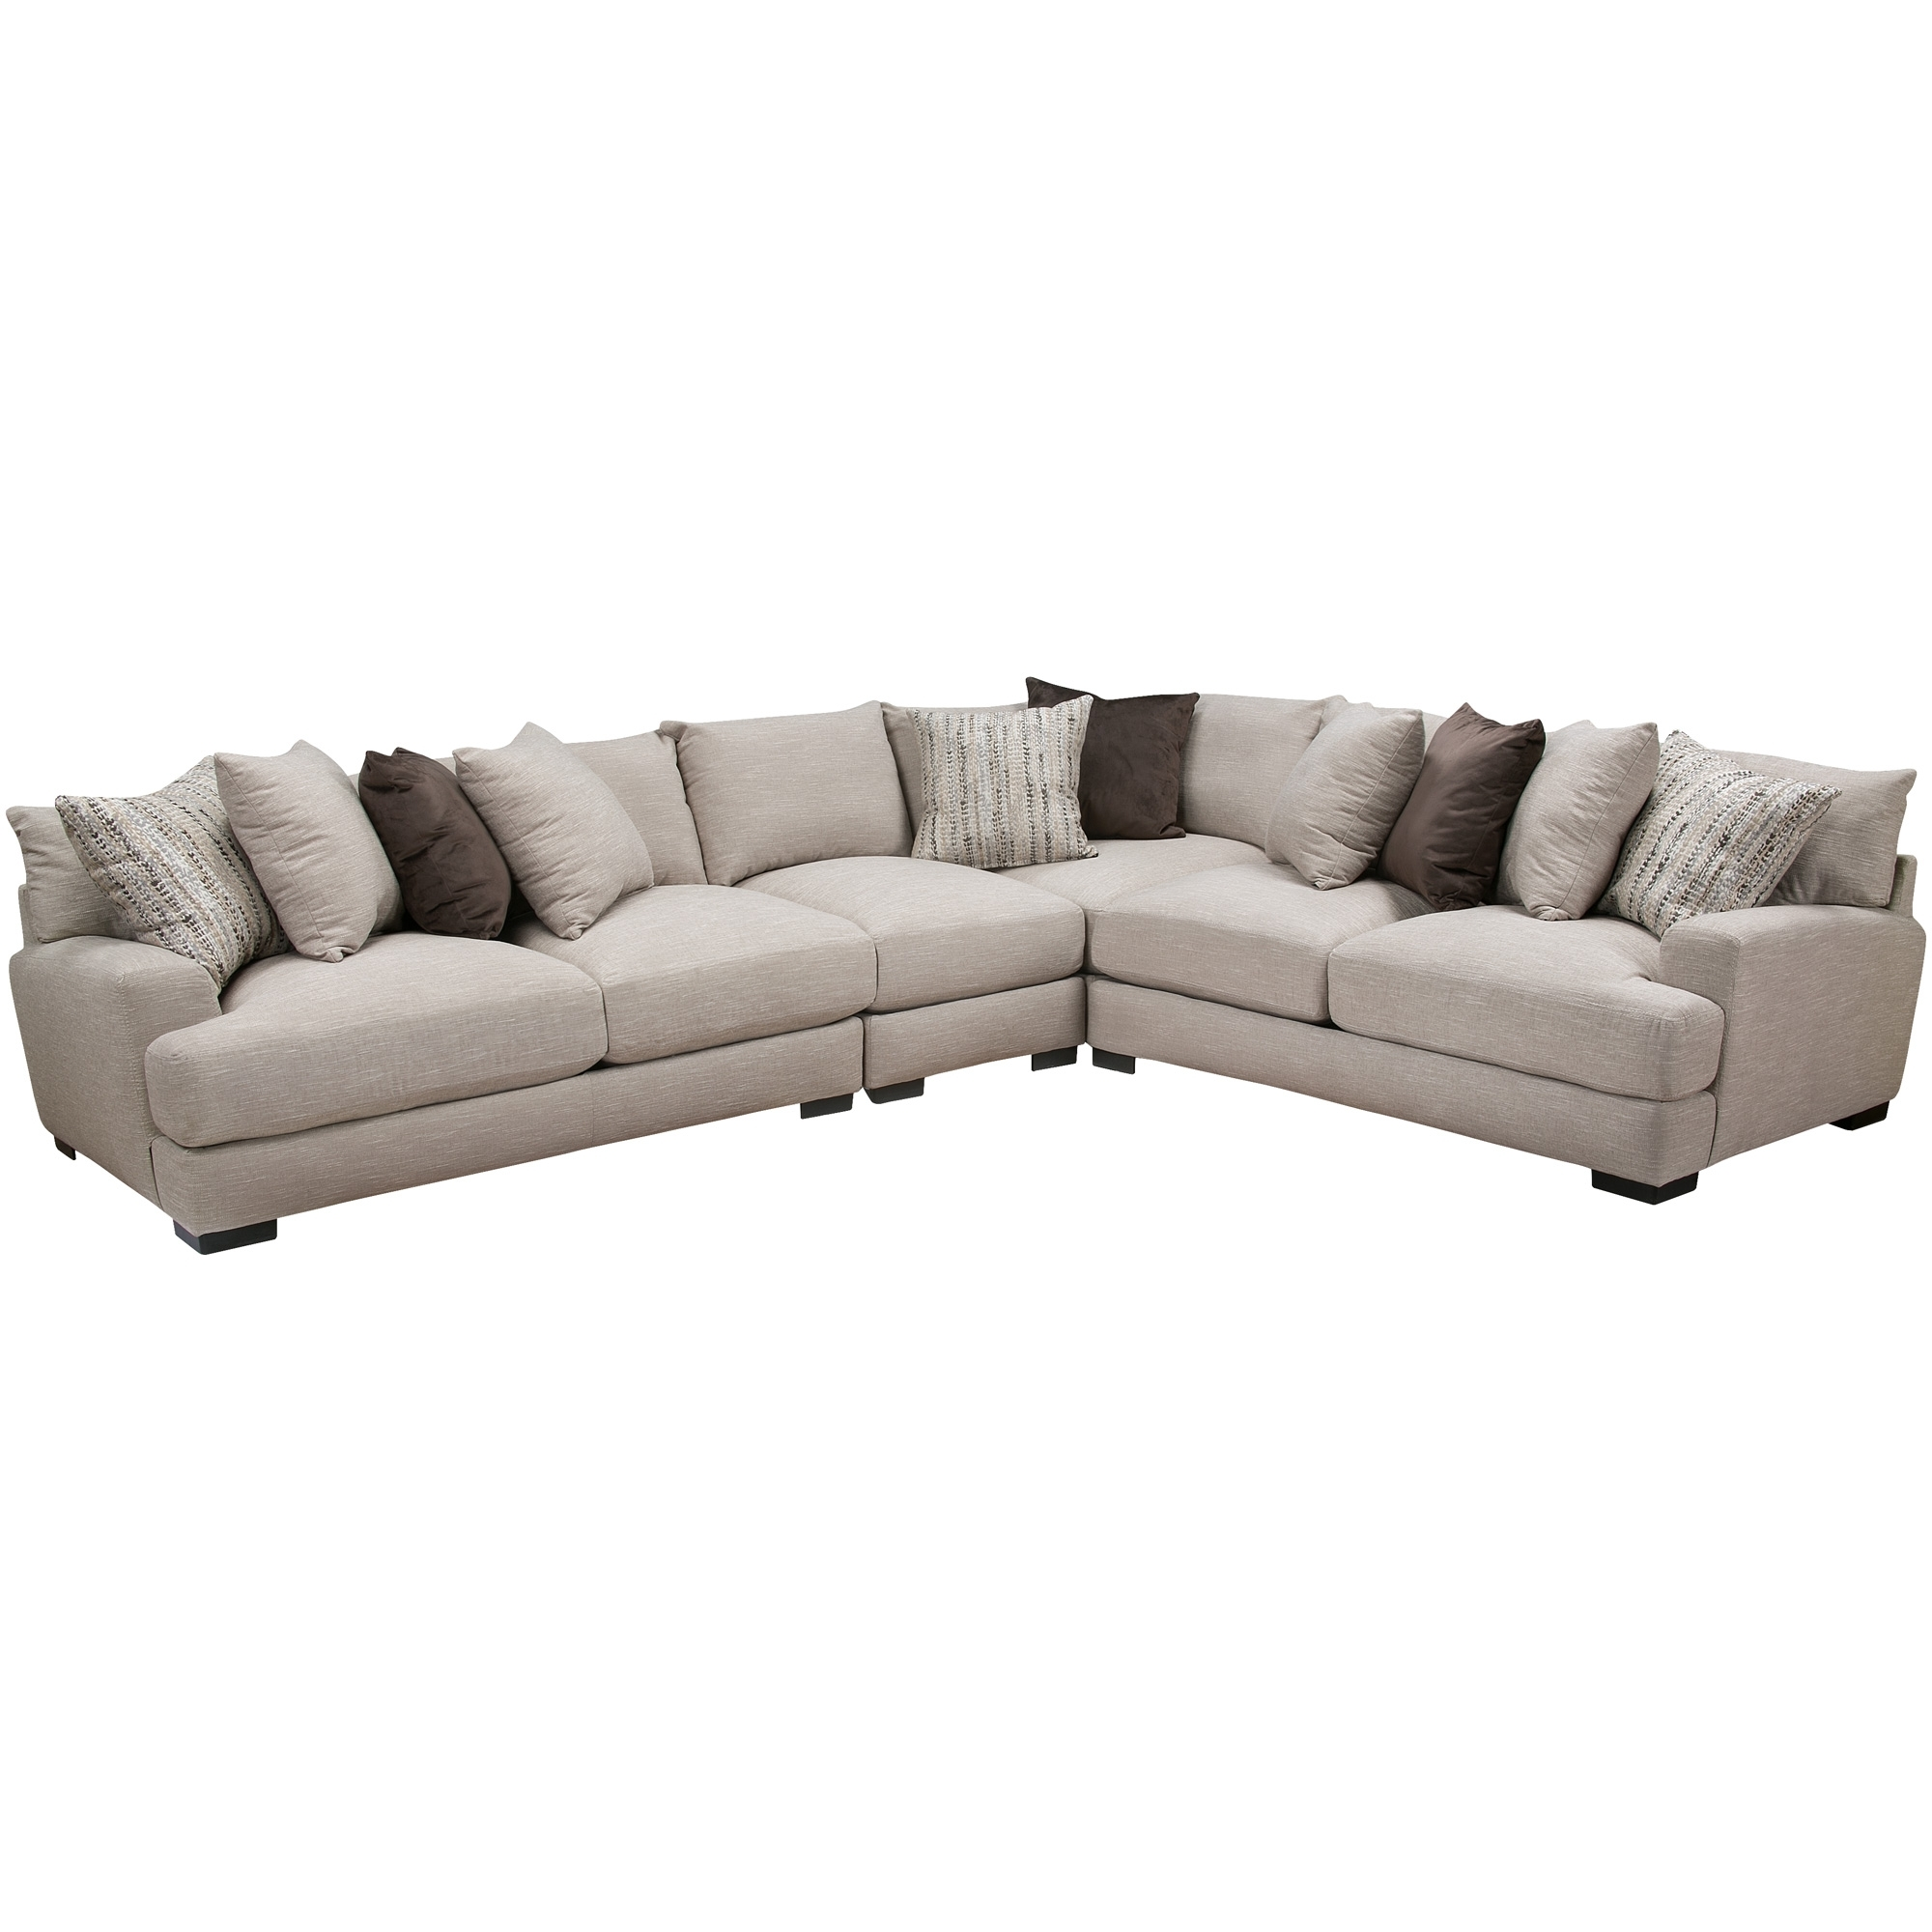 Slumberland Furniture | Wake Dusk 4Pc Sectional pertaining to Harper Down 3 Piece Sectionals (Image 28 of 30)